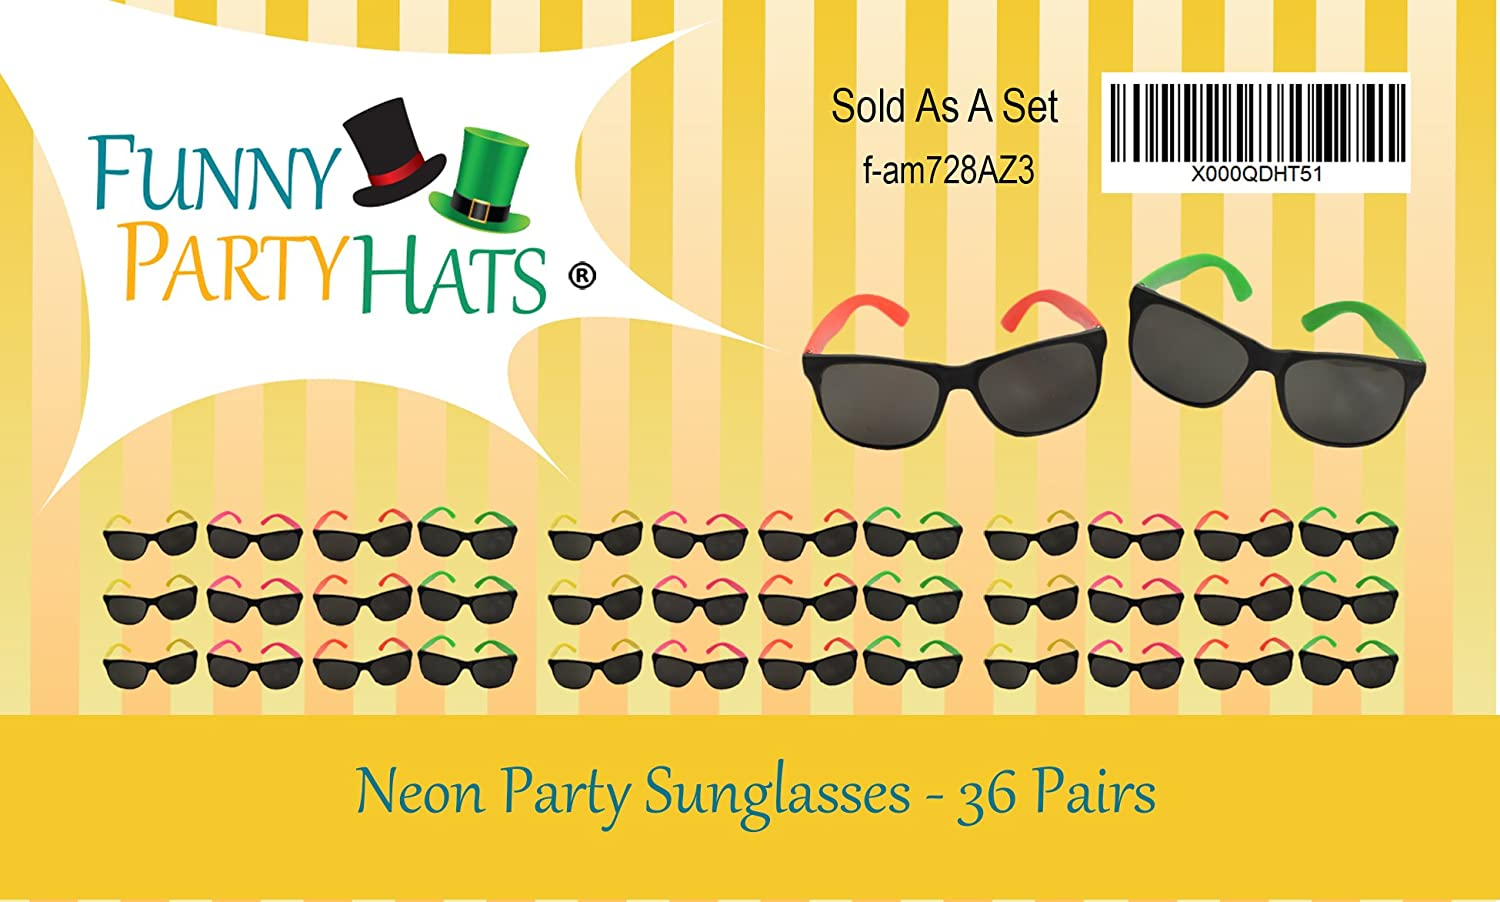 68b356deb24c6 Amazon.com  Funny Party Hats Neon Sunglasses- 36 Pack - Bulk Sunglasses -  Party Glasses - Pool Party - Beach Party Favors  Toys   Games